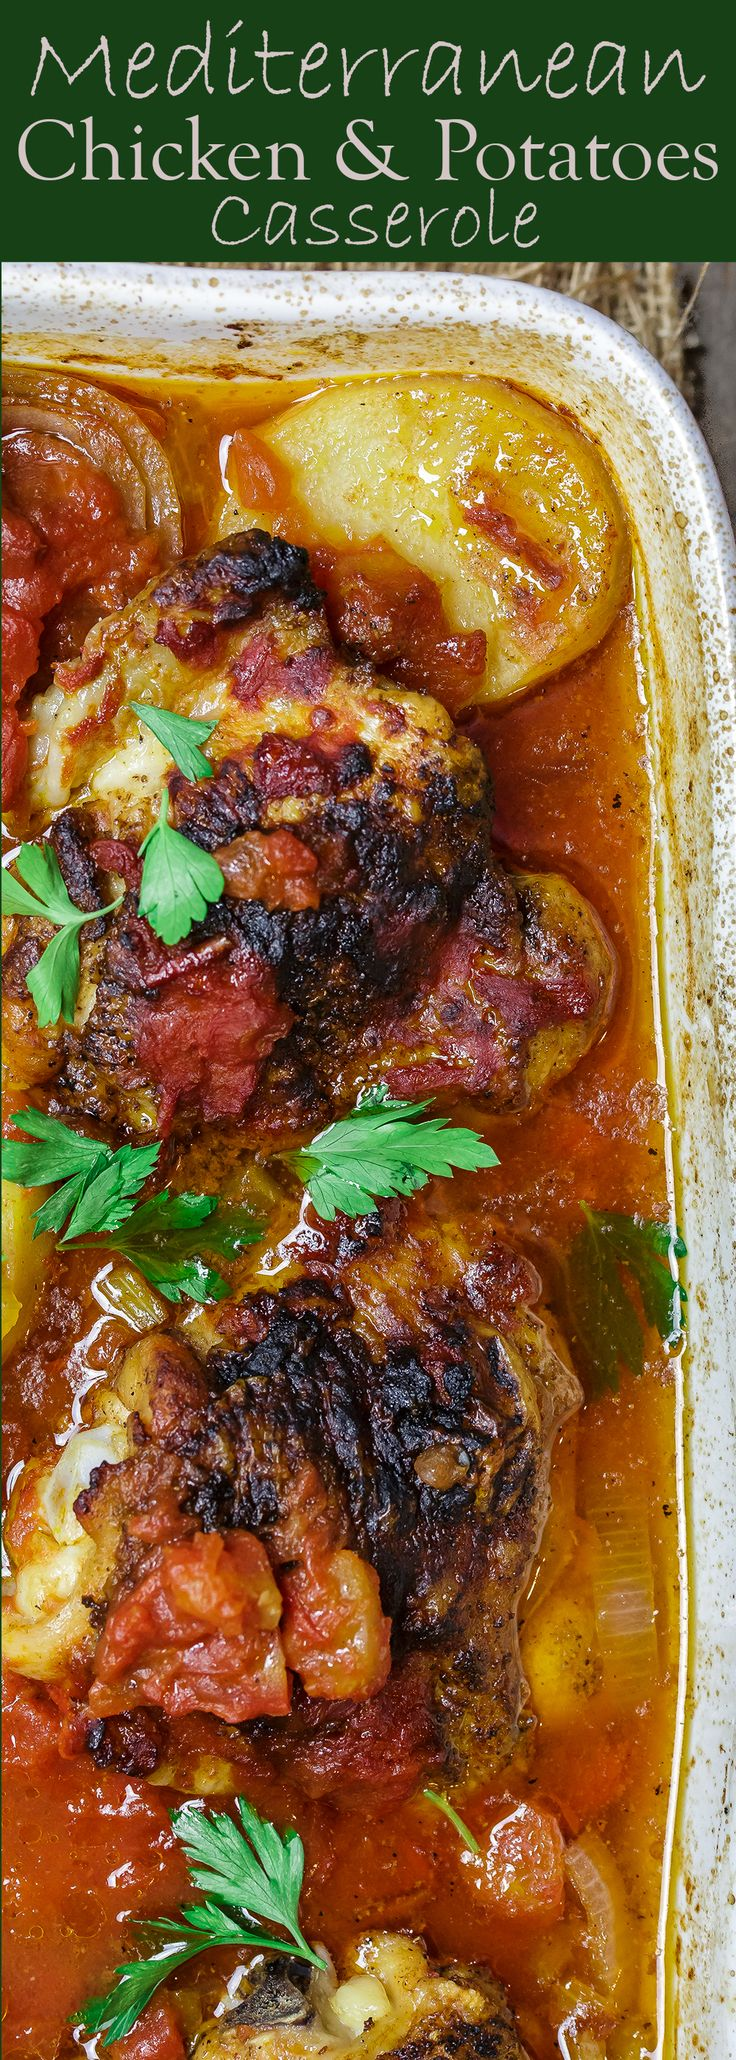 """Saucy"" Mediterranean Chicken and Potato Casserole! Chicken thighs, spiced the Mediterranean way then cooked with potatoes, onions, and carrots in a ""saucy"" tomato broth! Hearty, healthy, and delicious!"